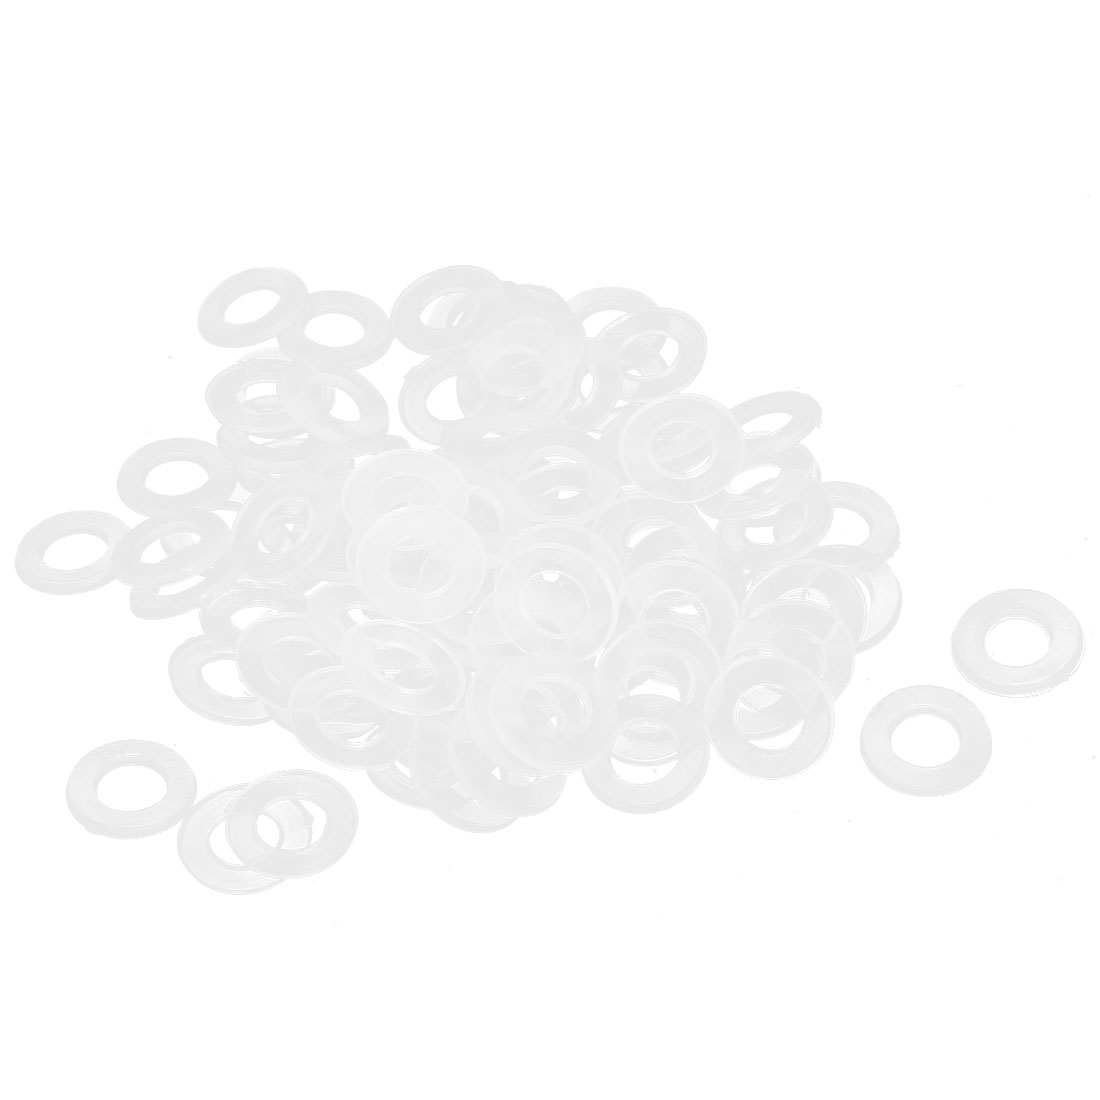 10mm x 5mm x 1mm Nylon Flat Insulating Washers Spacer Gasket Clear 100pcs